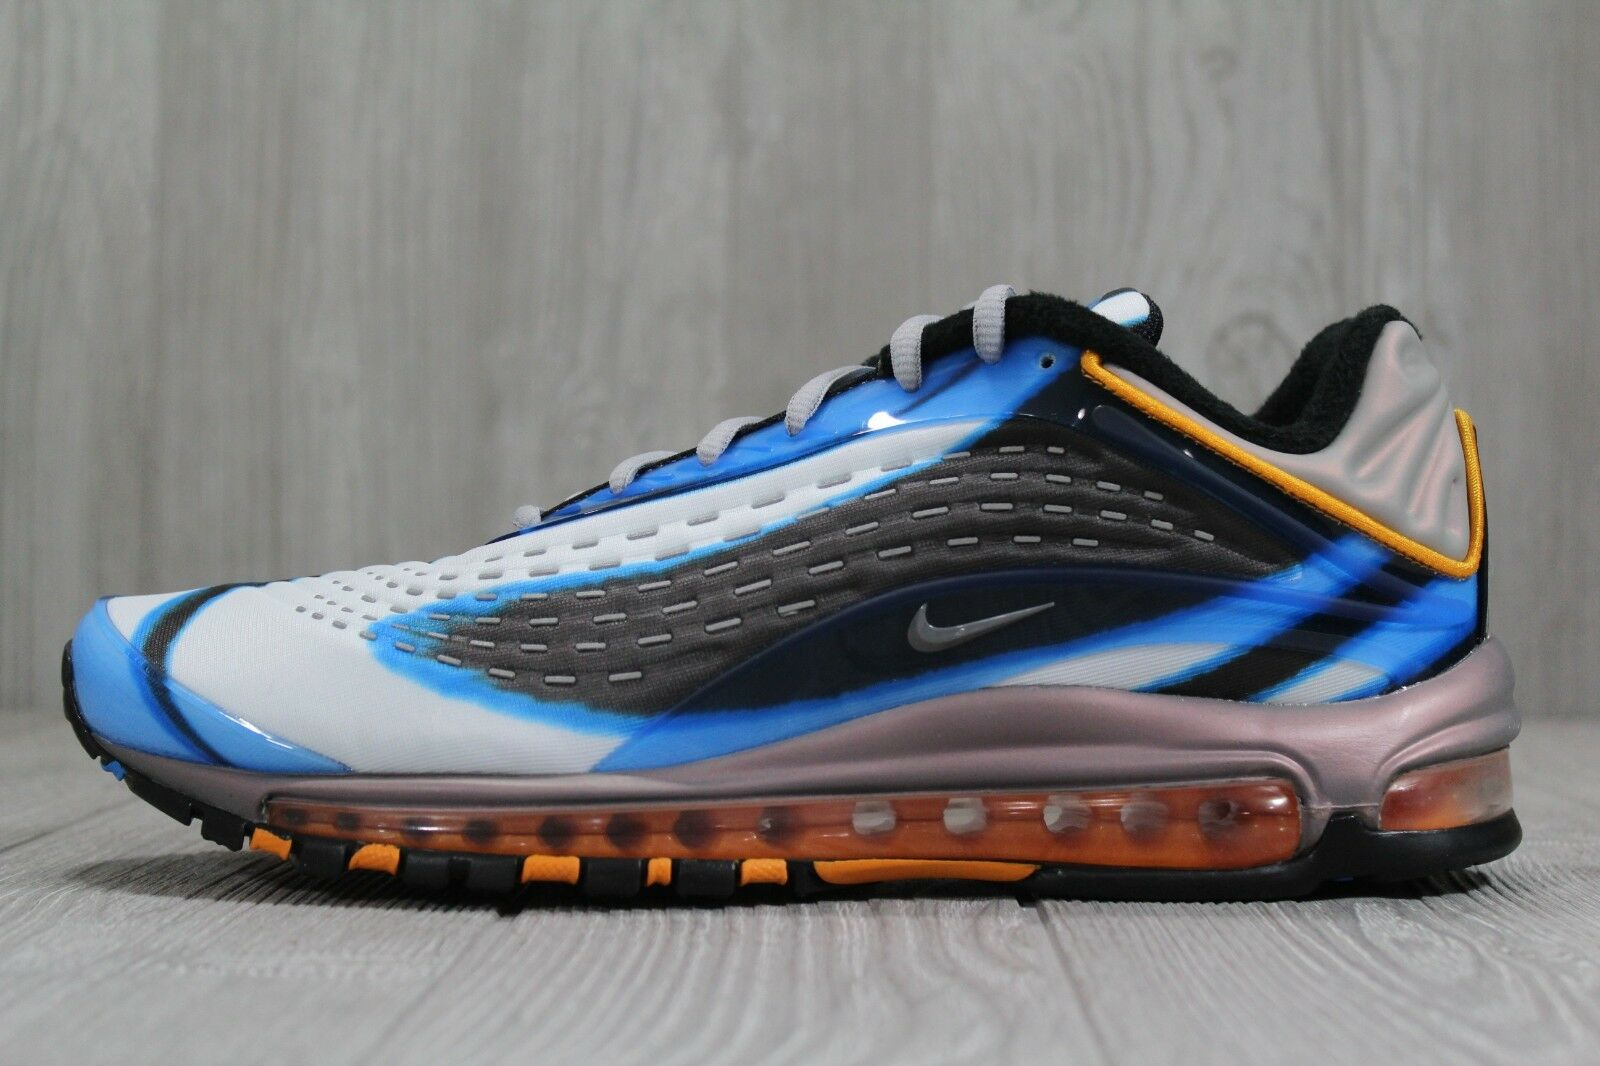 37  Nike Air Max Deluxe Photo bluee orange Peel shoes SZ 10.5 11 12.5 AJ7831-401